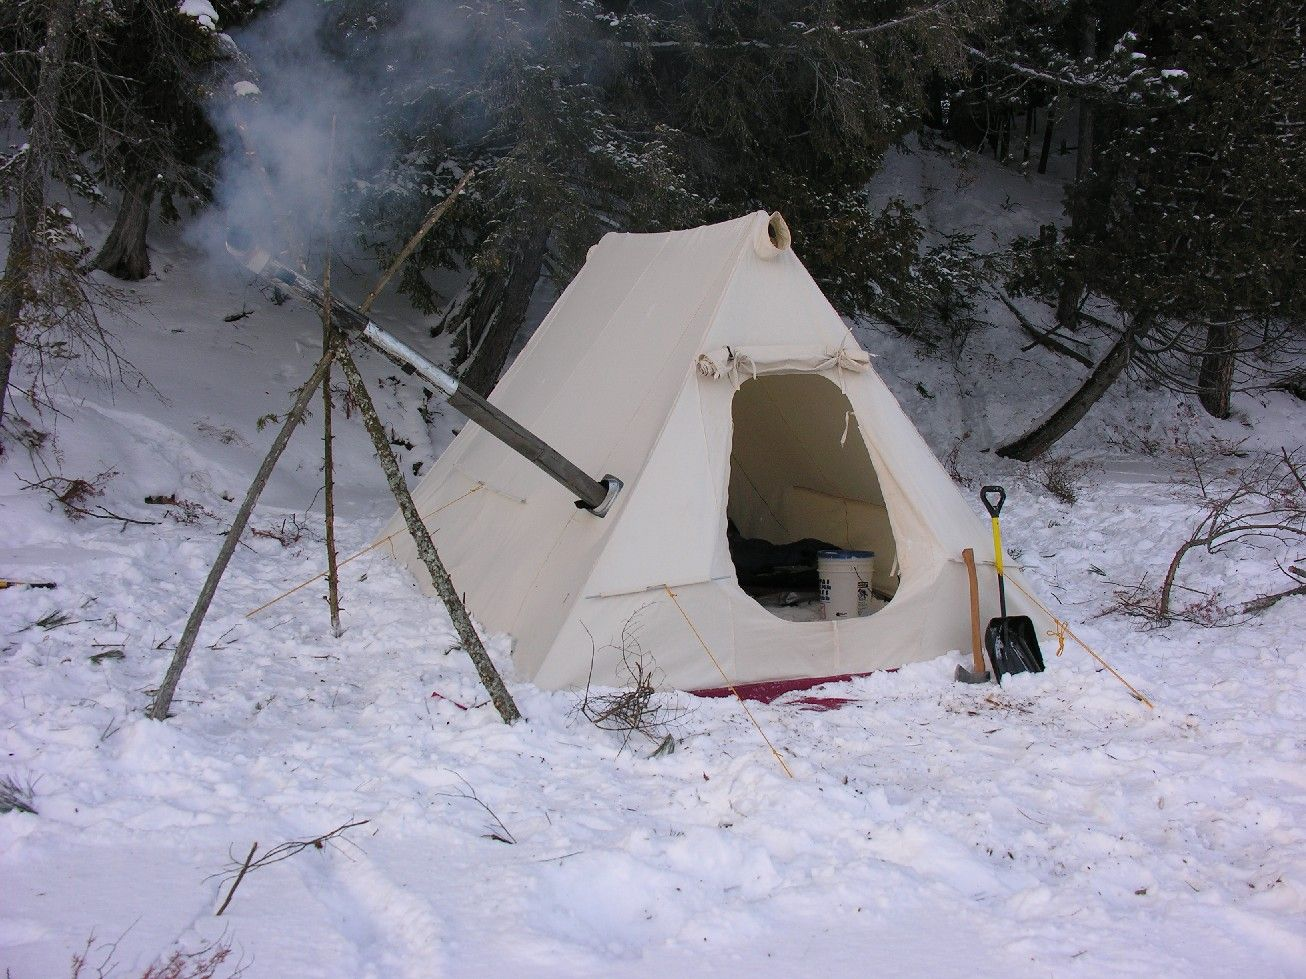 Winter C&ing Tents | View topic - Food Thoughts for Winter C&ing? & Winter Camping Tents | View topic - Food Thoughts for Winter ...